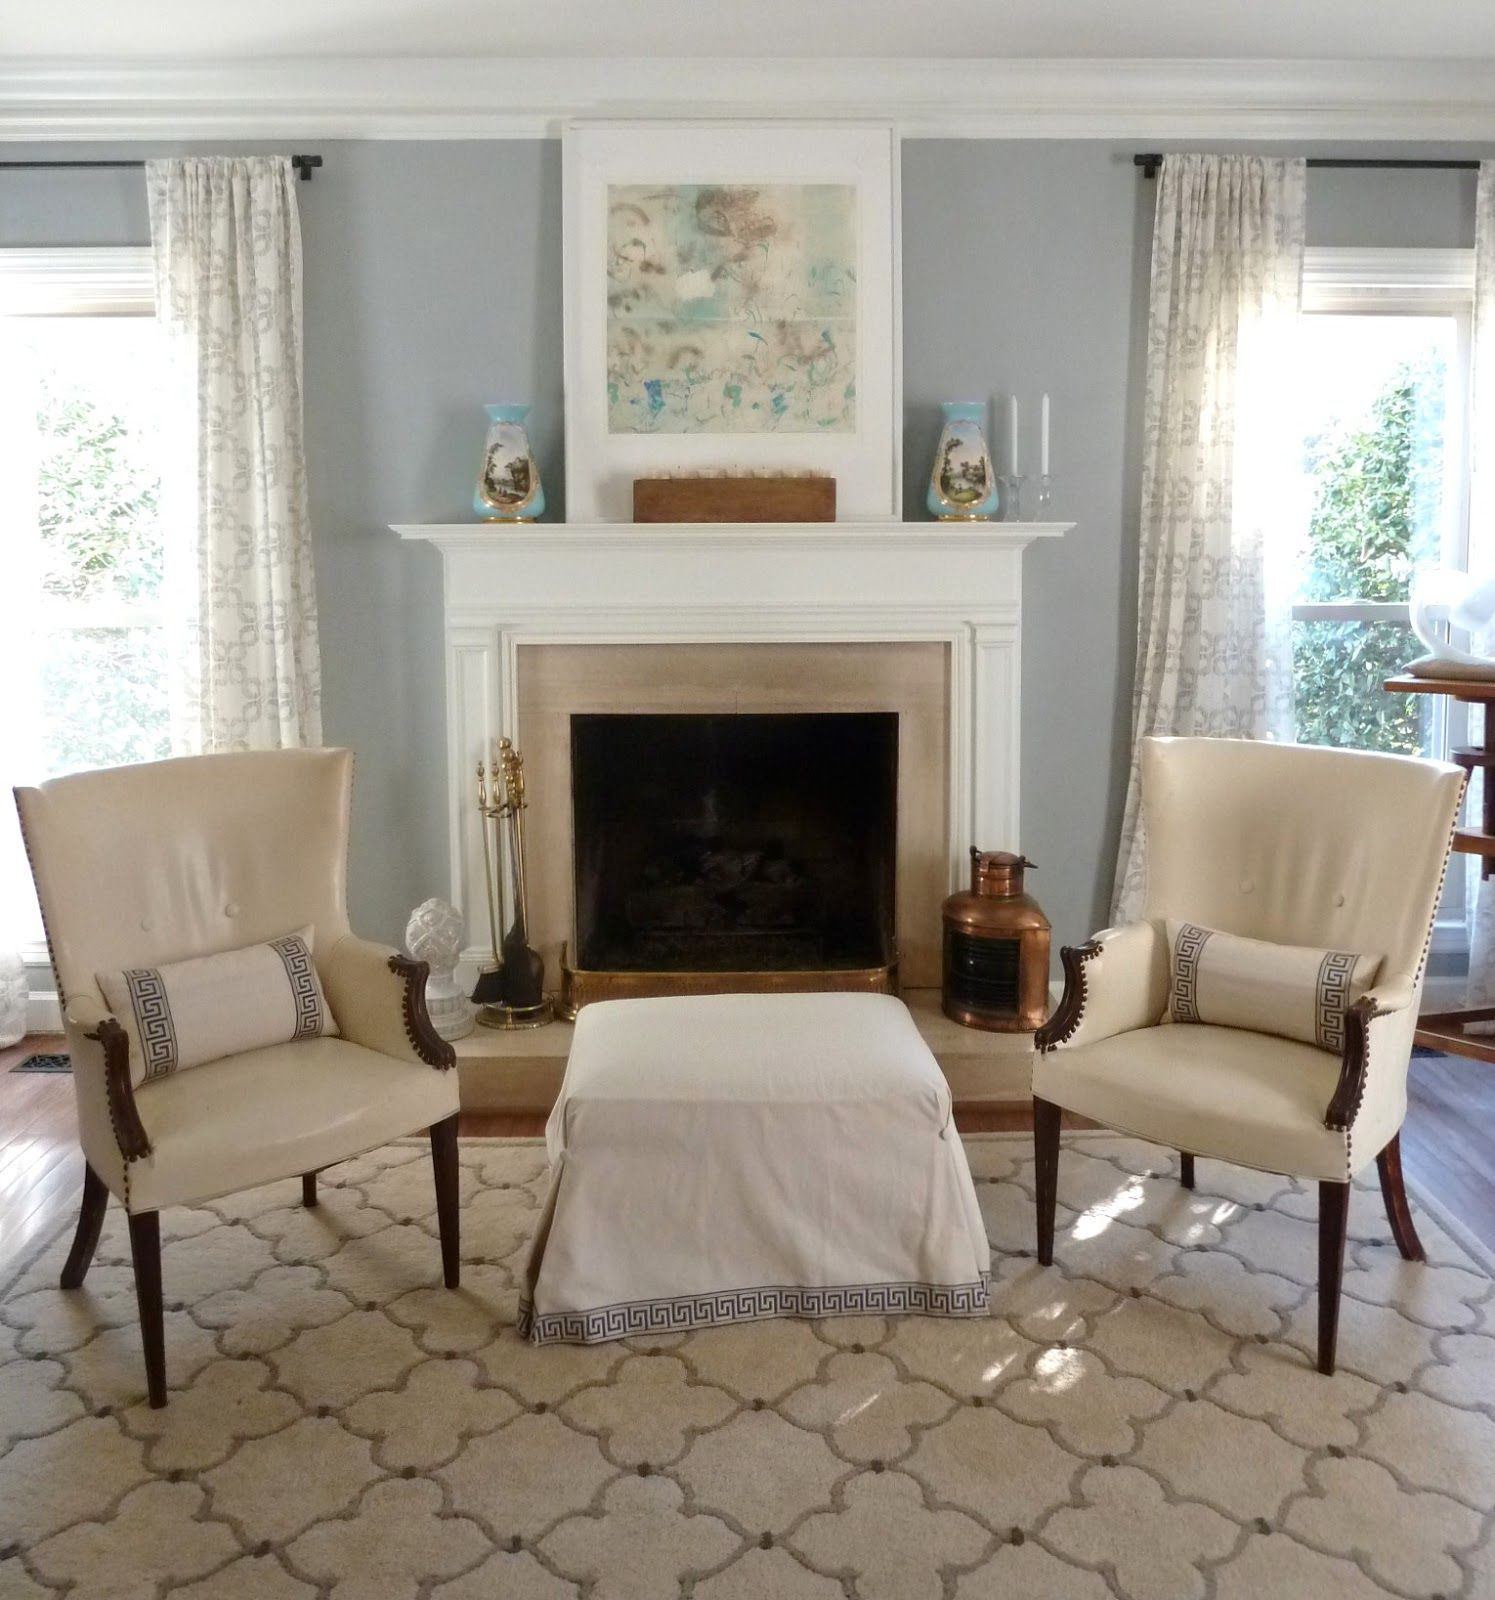 Benjamin Moore Colors For Your Living Room Decor: Our Inviting Living Room: Benjamin Moore Coventry Gray